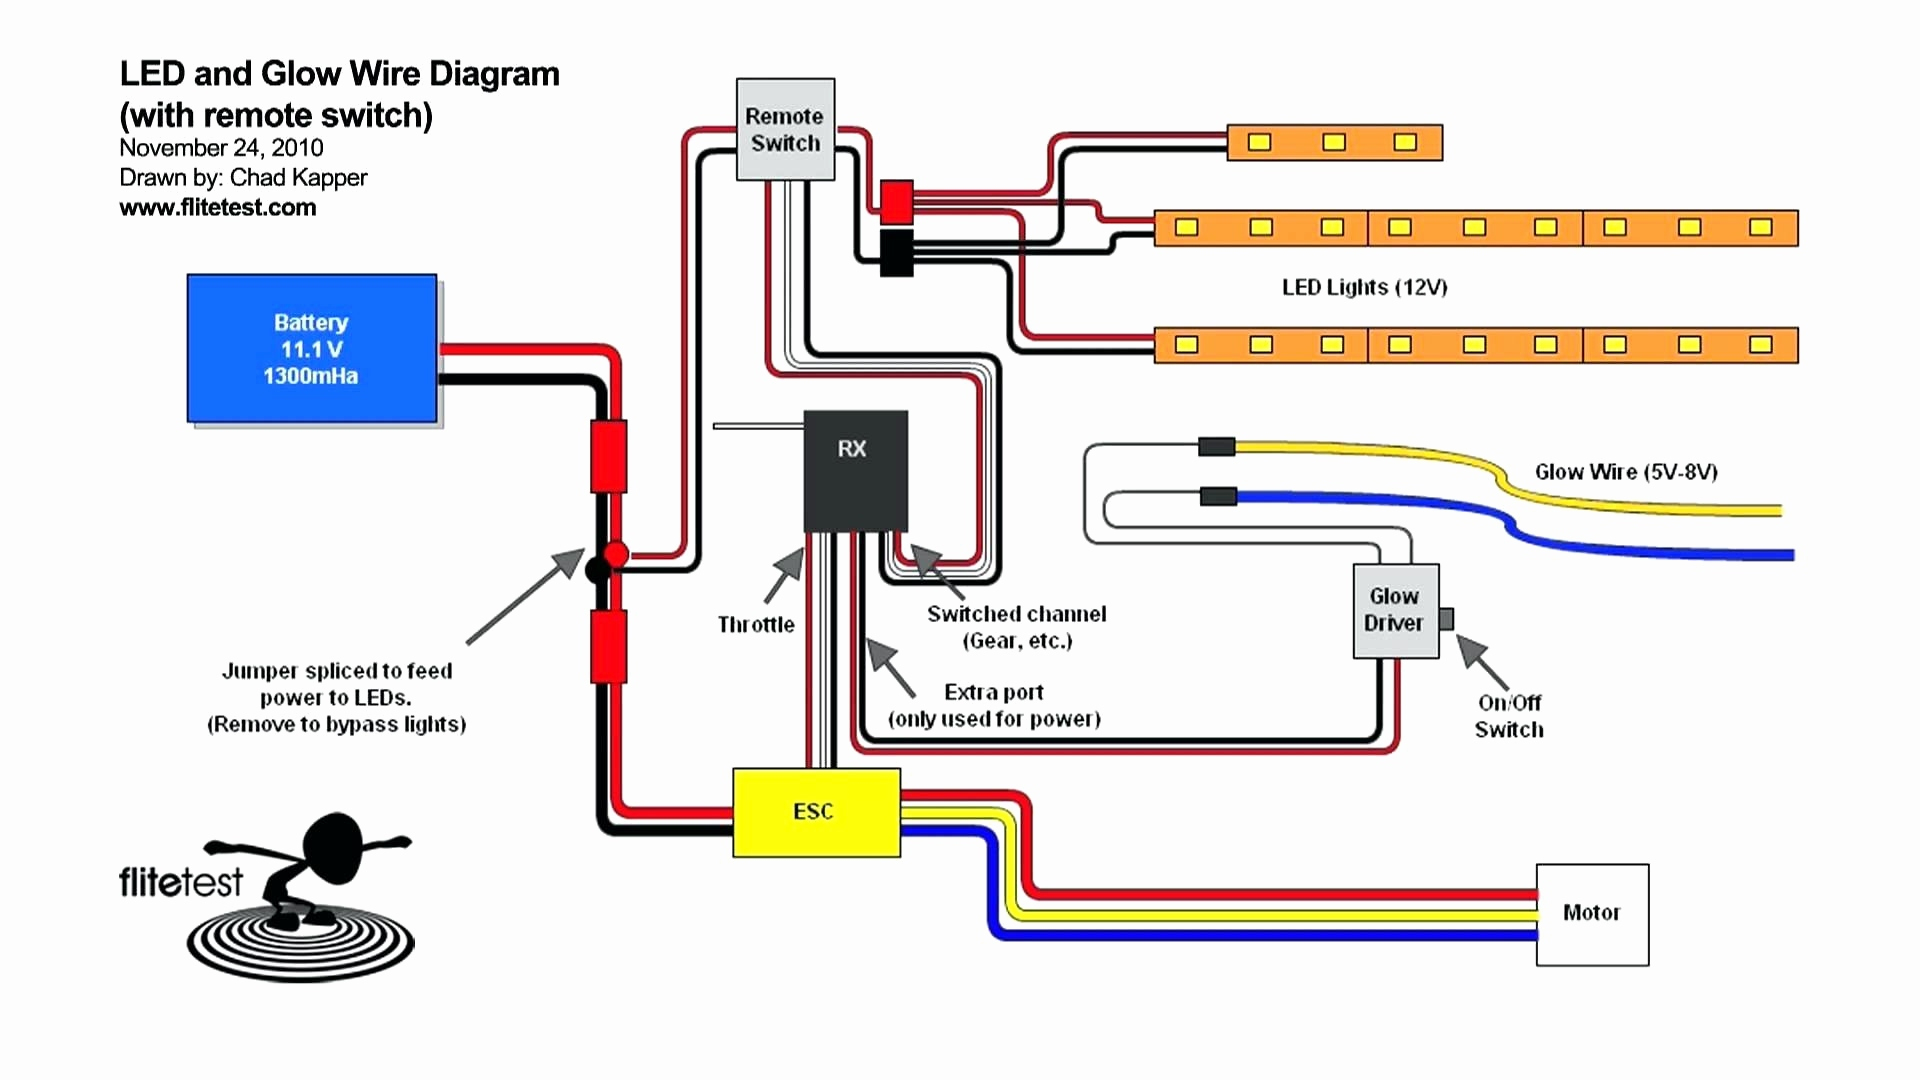 Led Light 12V 3 Wire Wiring Diagram | Wiring Diagram - Trailer Led Light Wiring Diagram